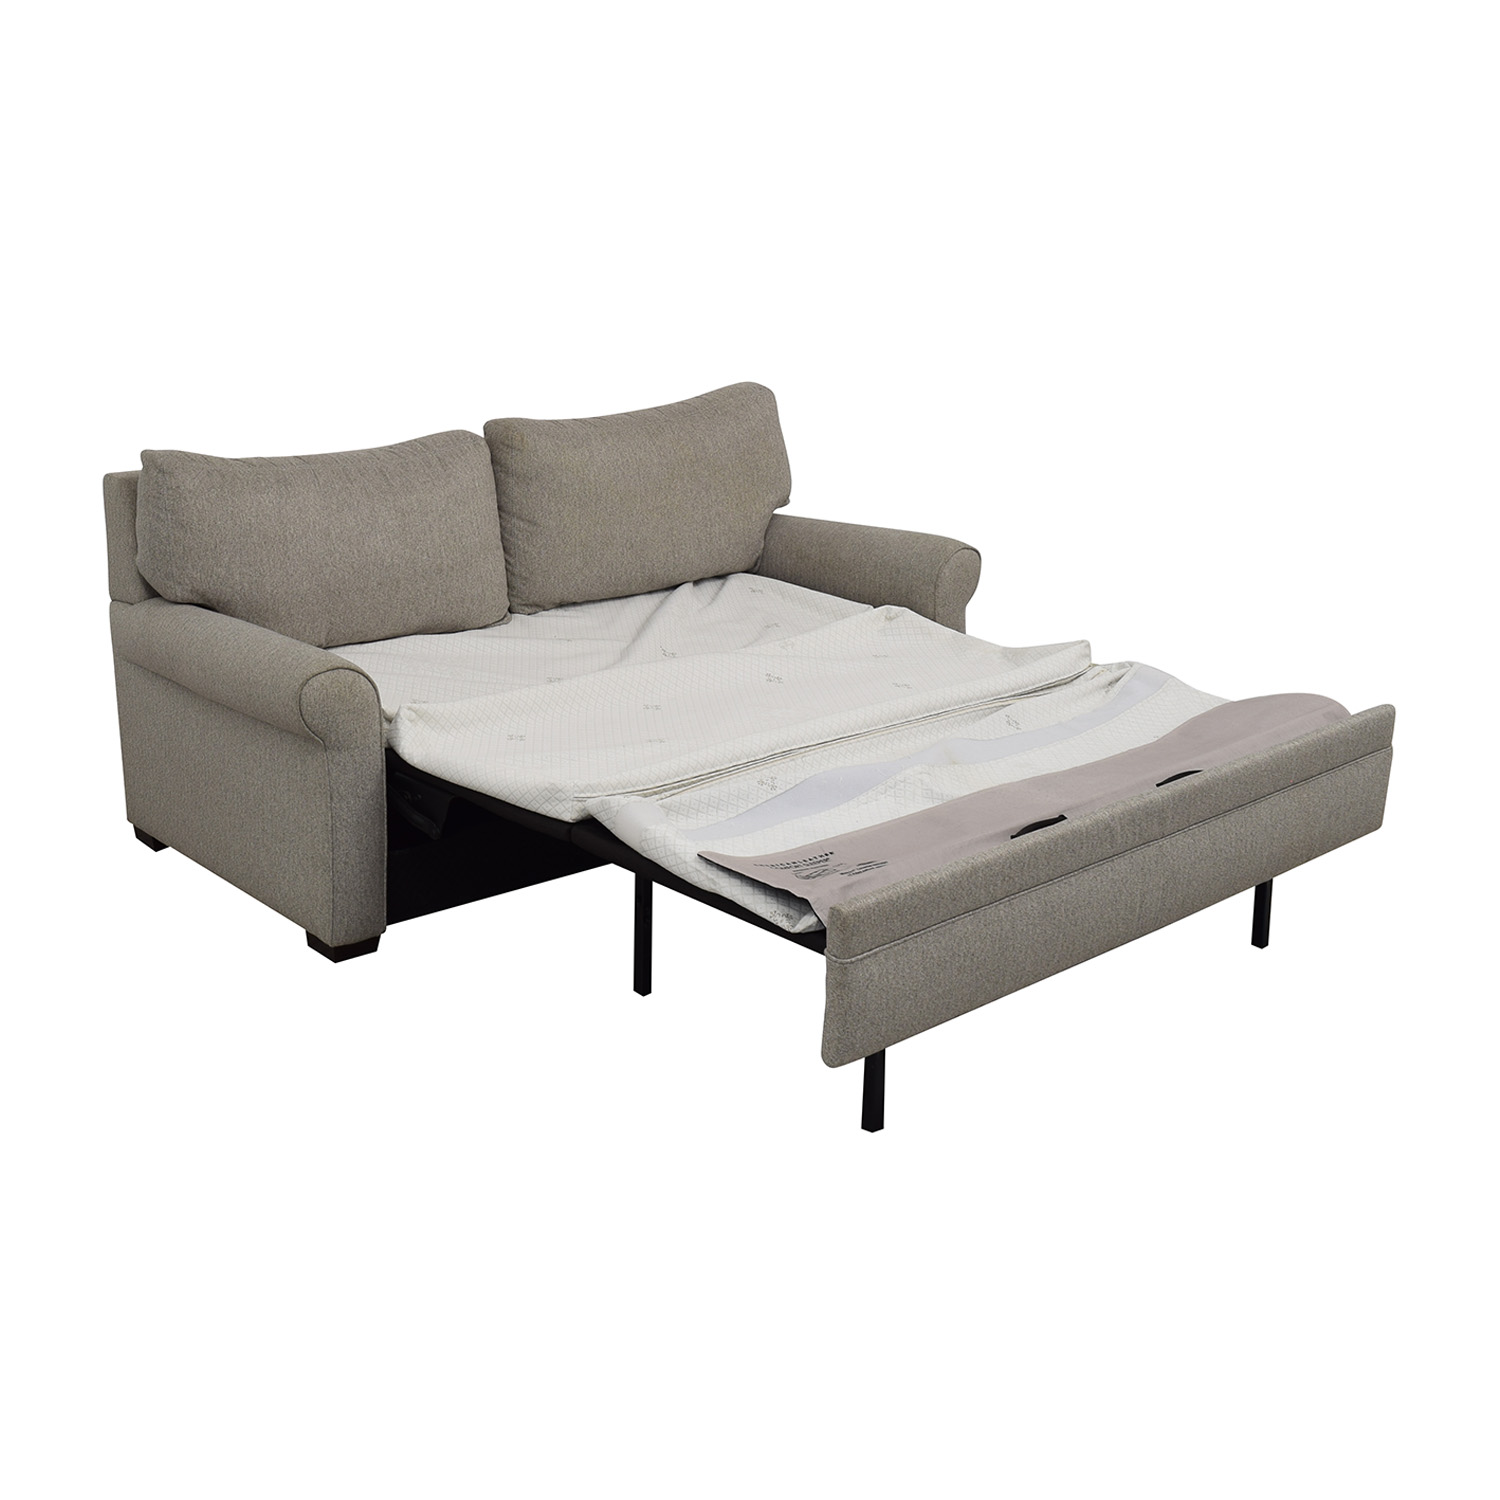 shop American Leather American Leather Gaines Queen Sleeper Sofa online